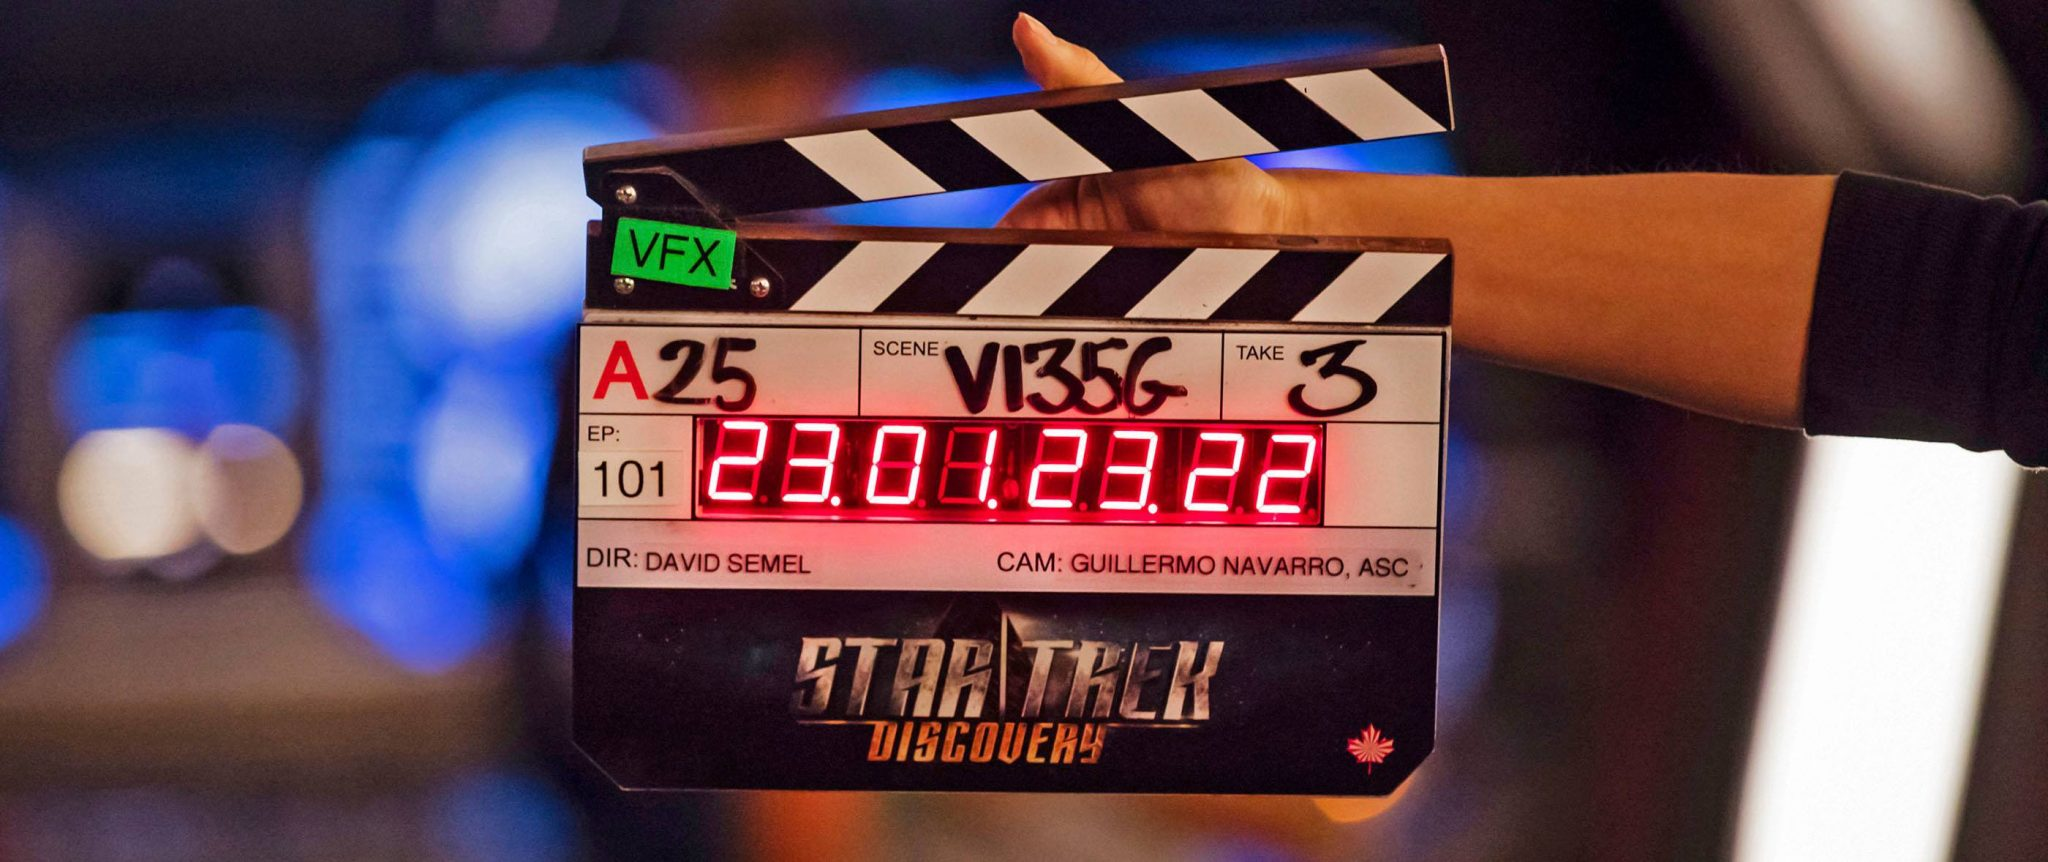 Star Trek: Discovery Begins Production and Releases Teaser